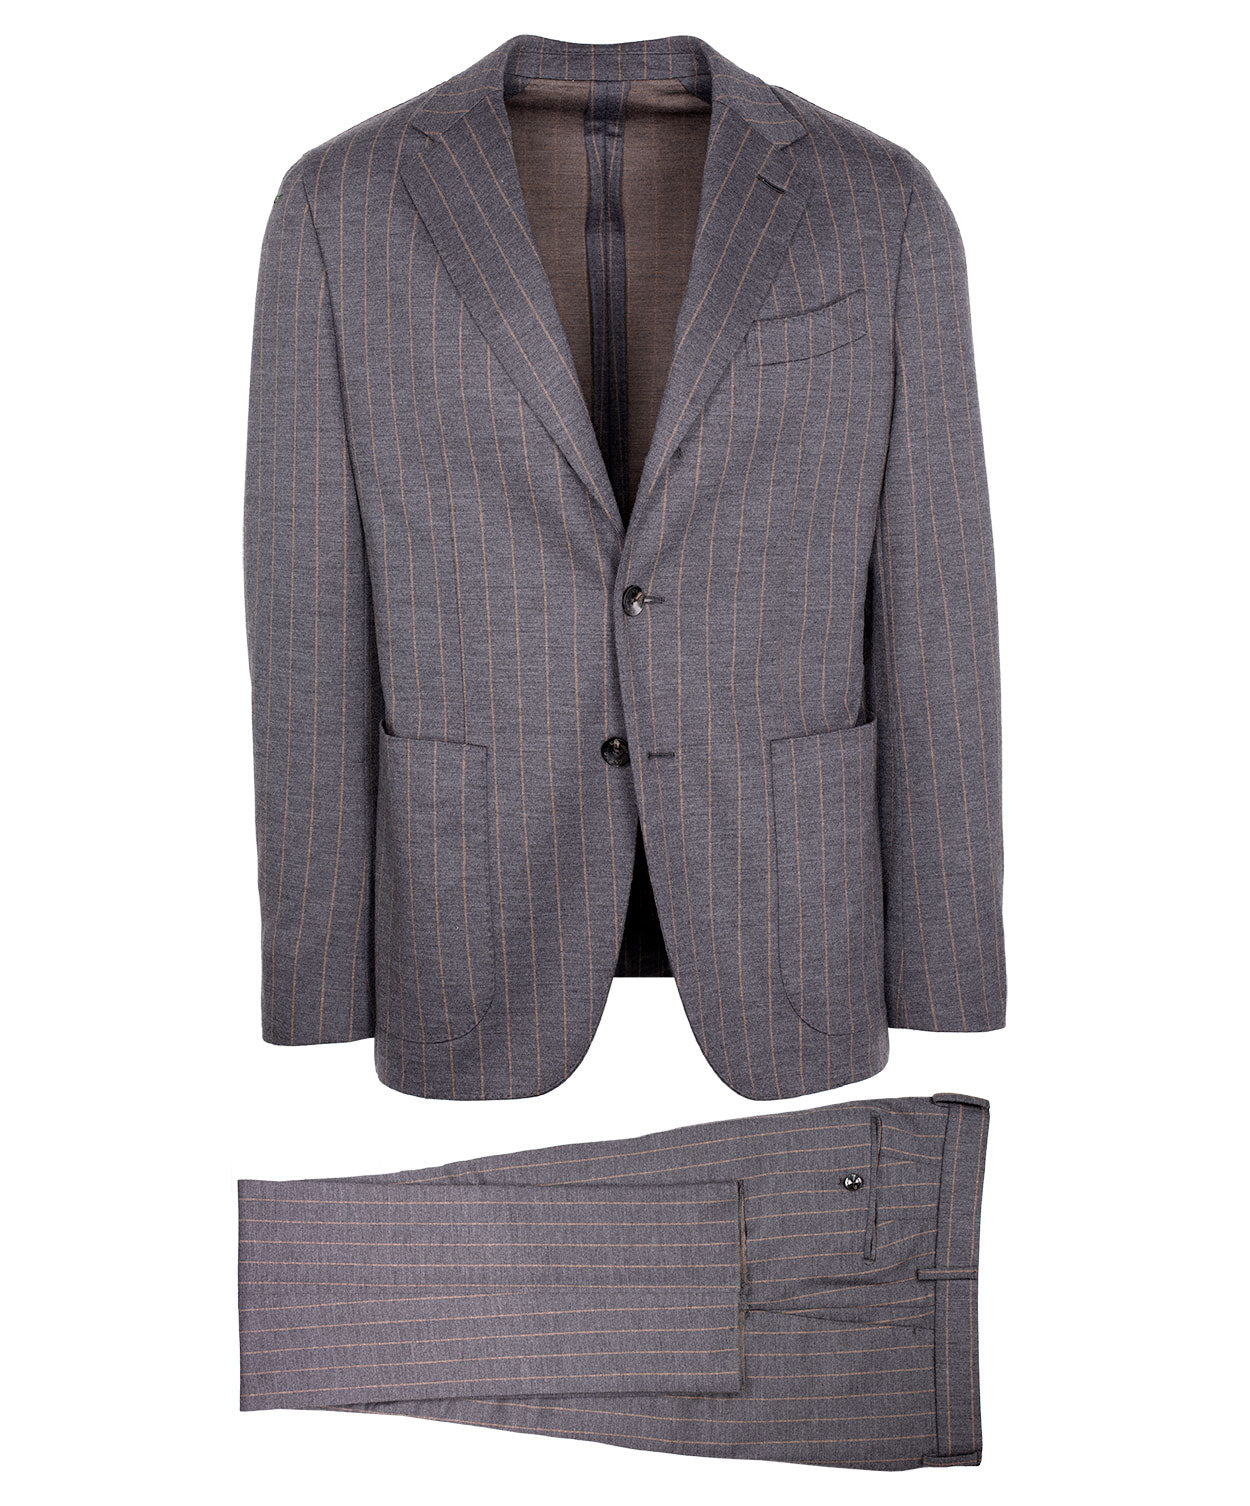 Grey/Tobacco Wide Pinstripe Suit